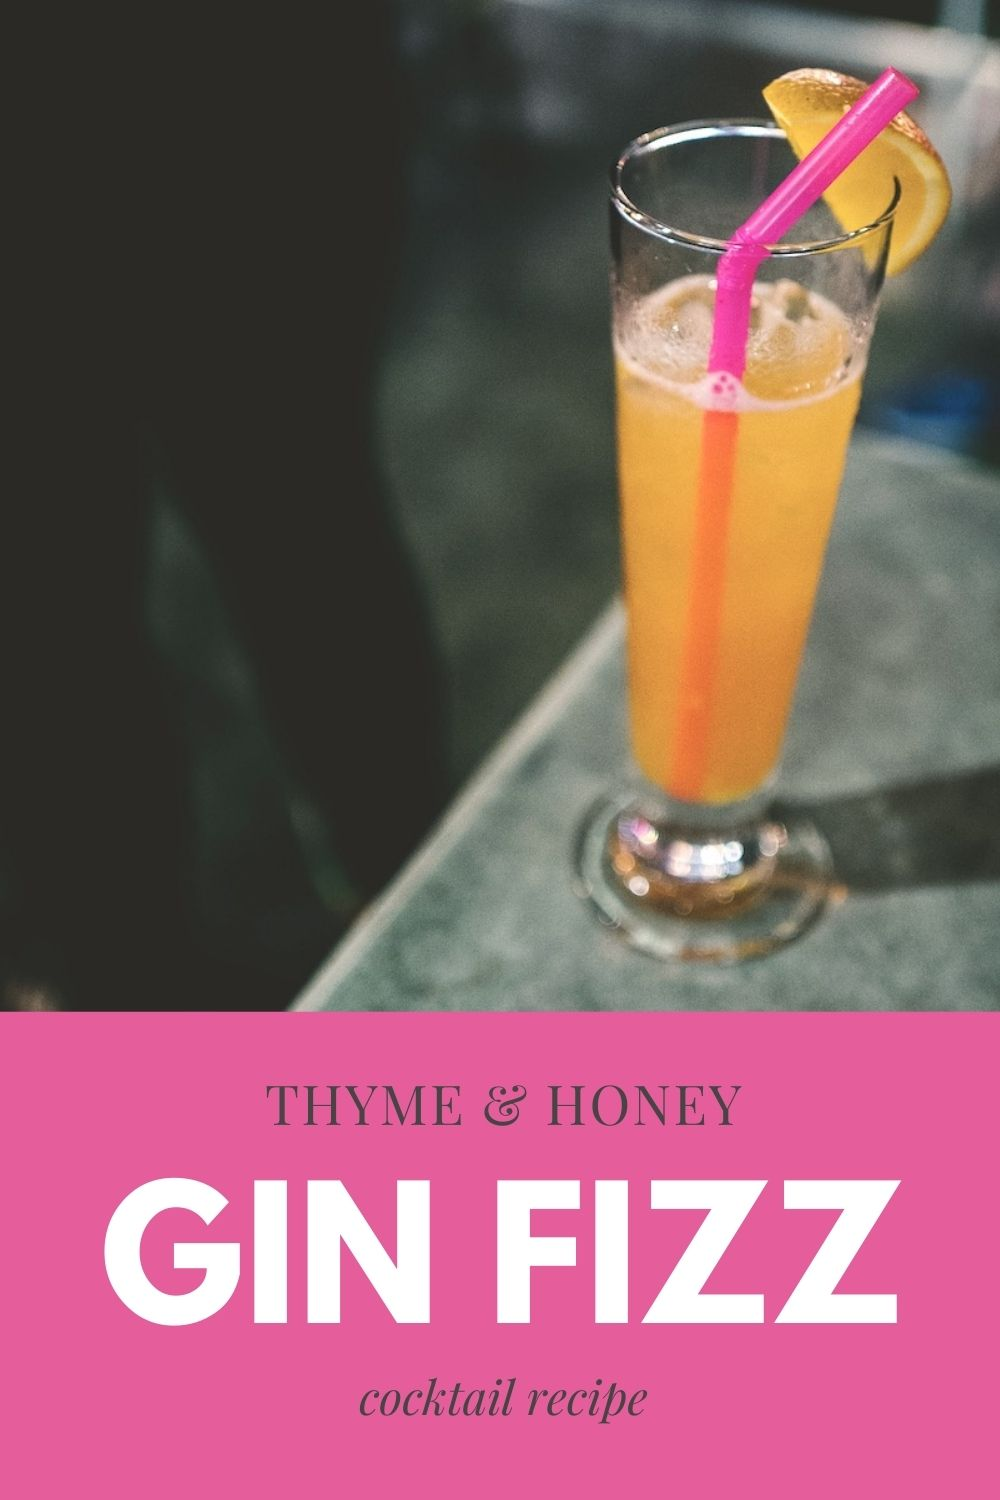 Thyme and Honey Gin Fizz Recipe Graphic